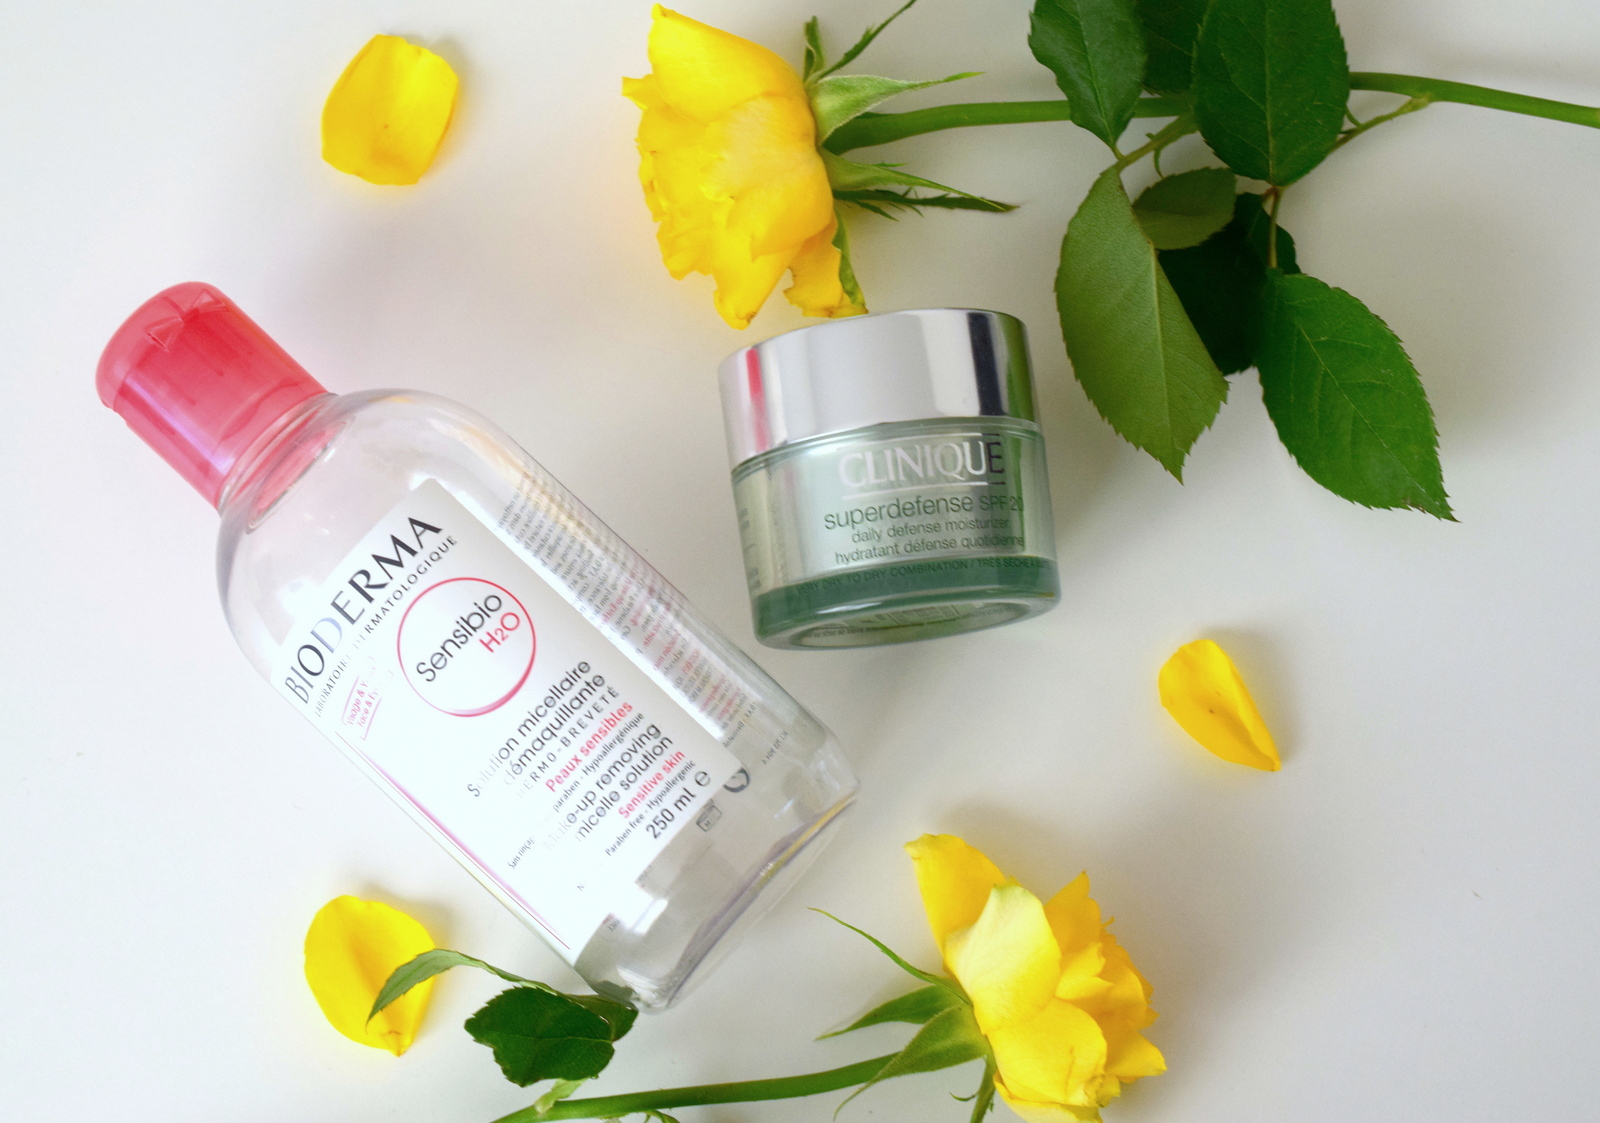 Aufgebraucht und Nachgekauft: Gesichtspflege von Bioderma und Clinique im Test auf Beauty Lifestyle Mama Blog I need sunshine